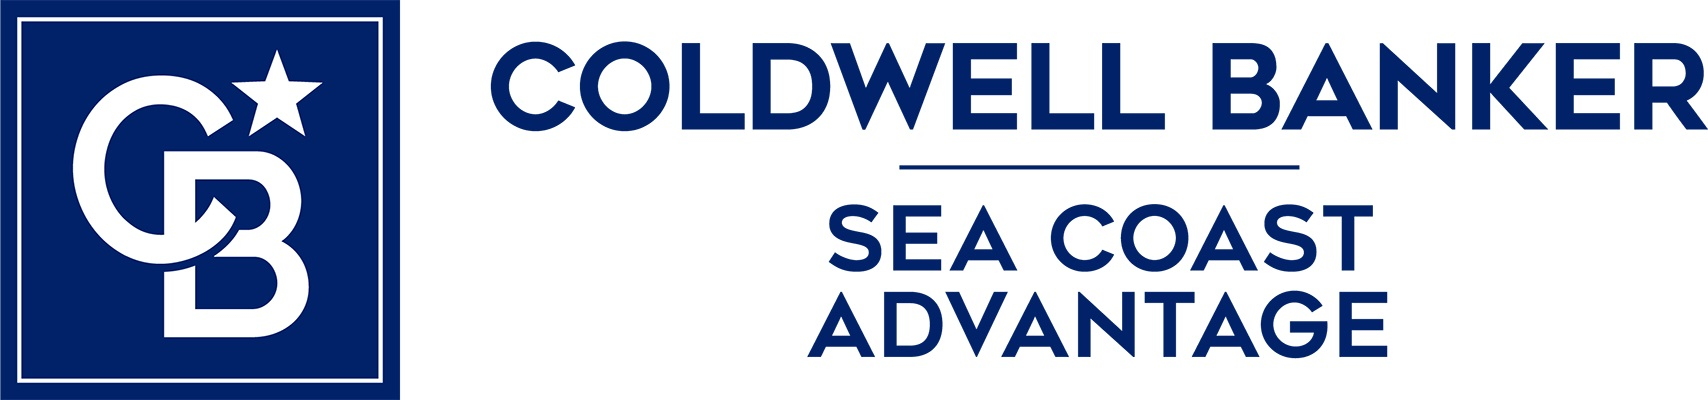 Lisa Chessock - Coldwell Banker Sea Coast Advantage Realty